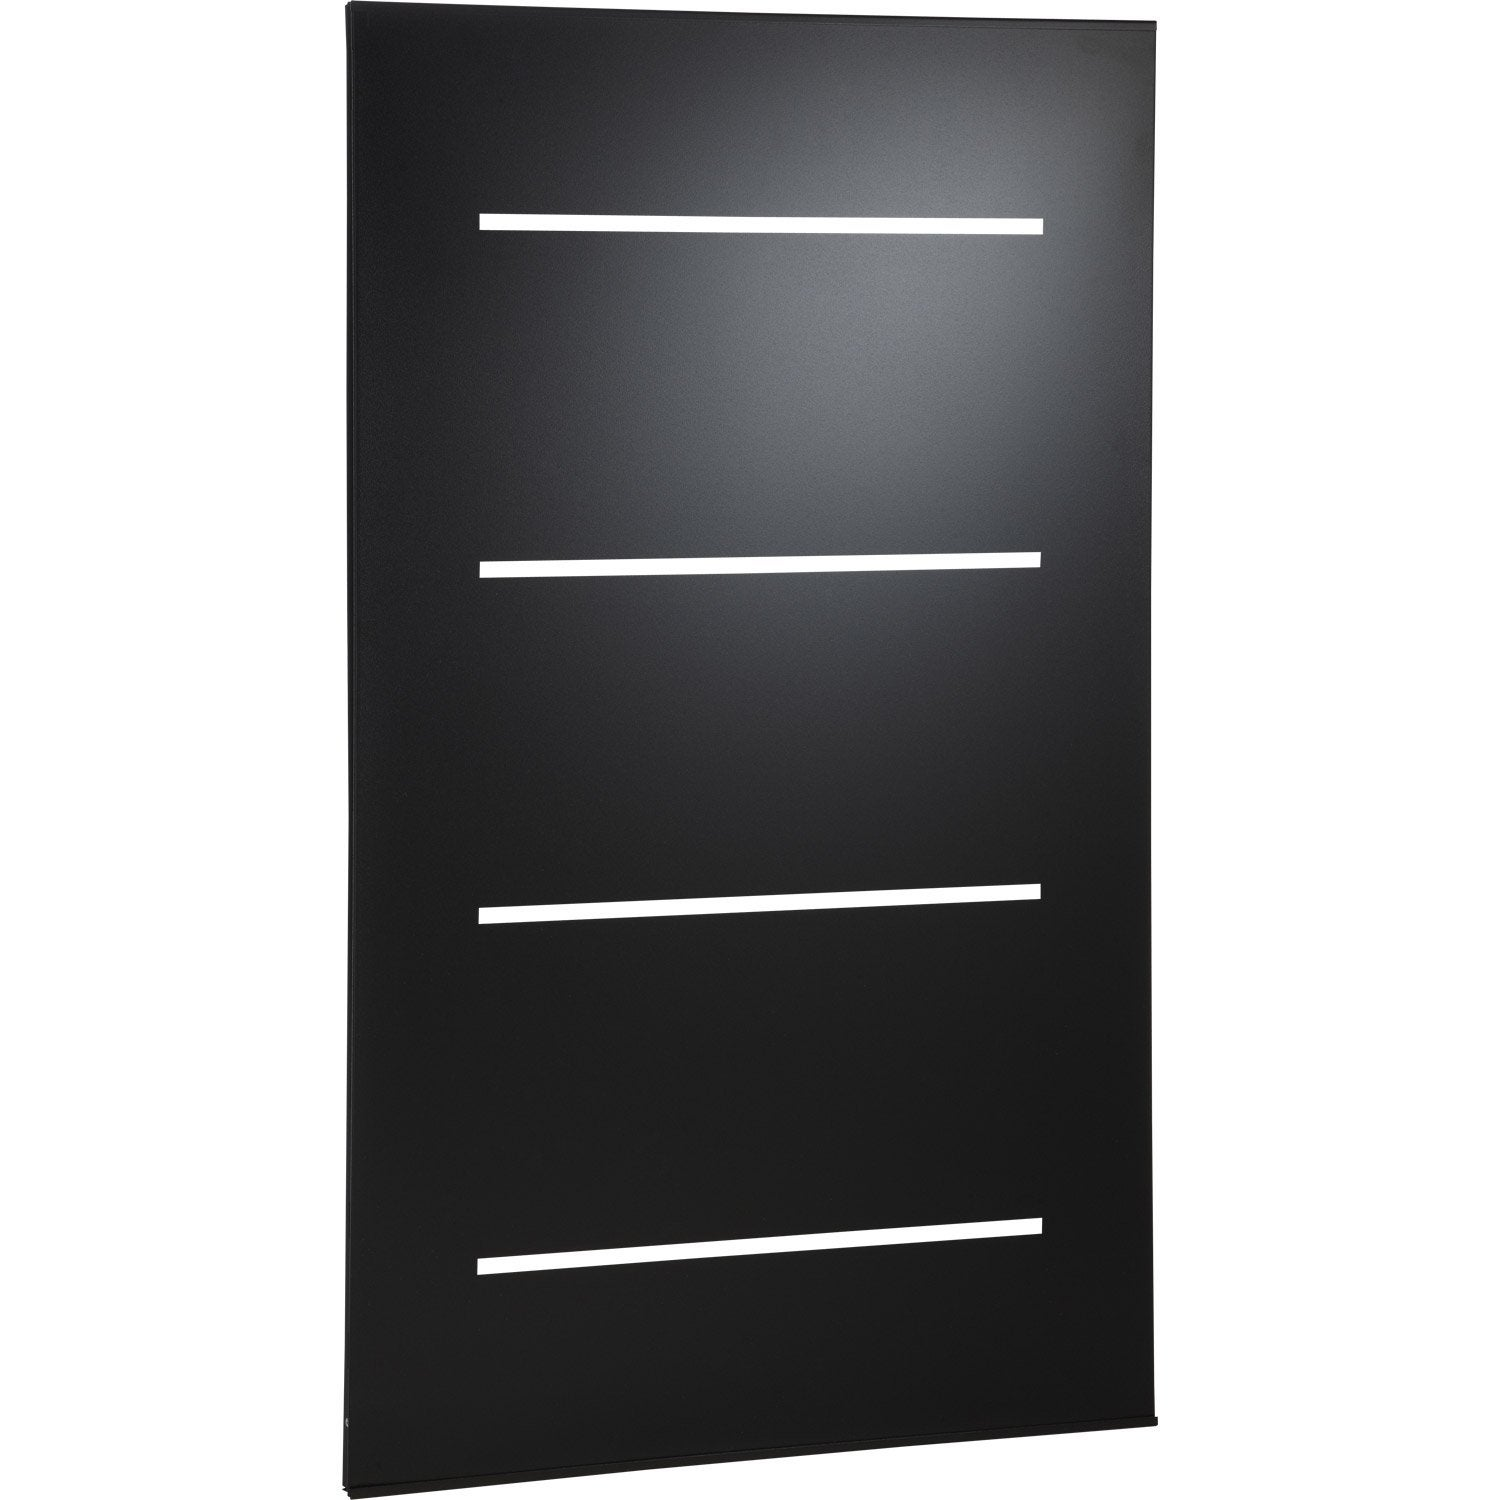 plaque de protection murale acier noir atelier dix neuf. Black Bedroom Furniture Sets. Home Design Ideas